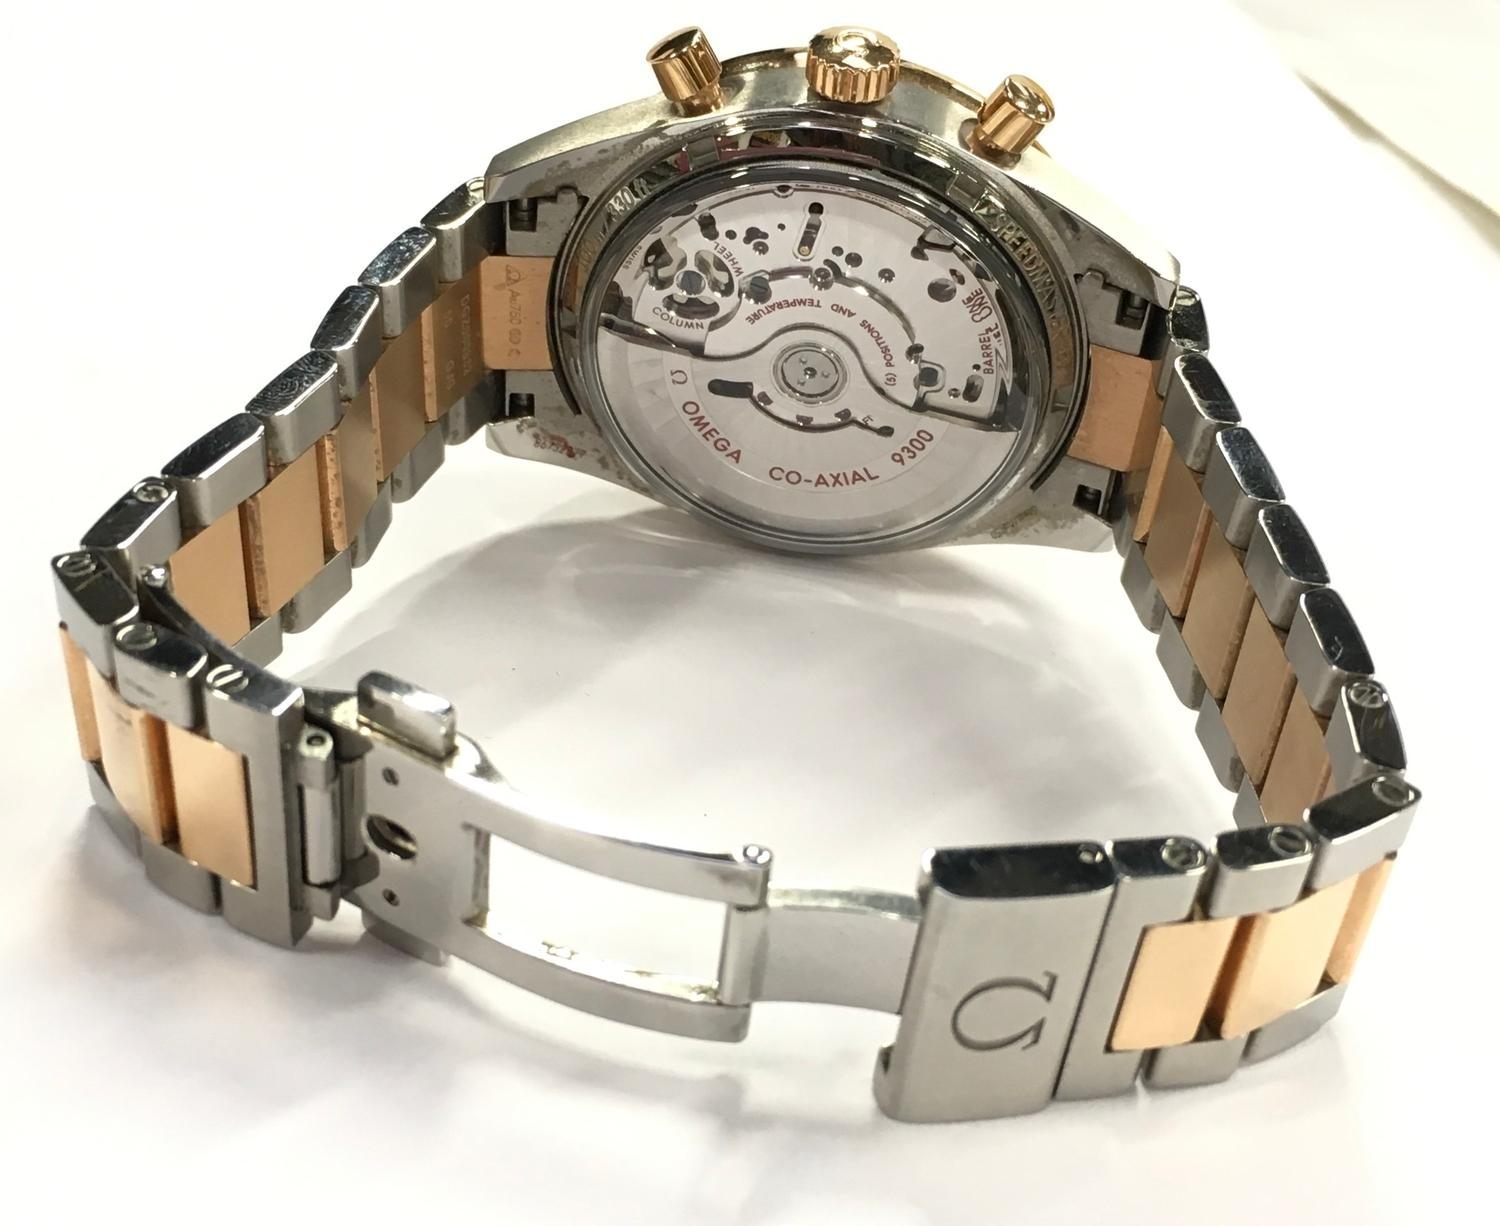 Omega Rose Gold and Stainless Steel Speedmaster Wristwatch, co-axial movement. - Image 6 of 11